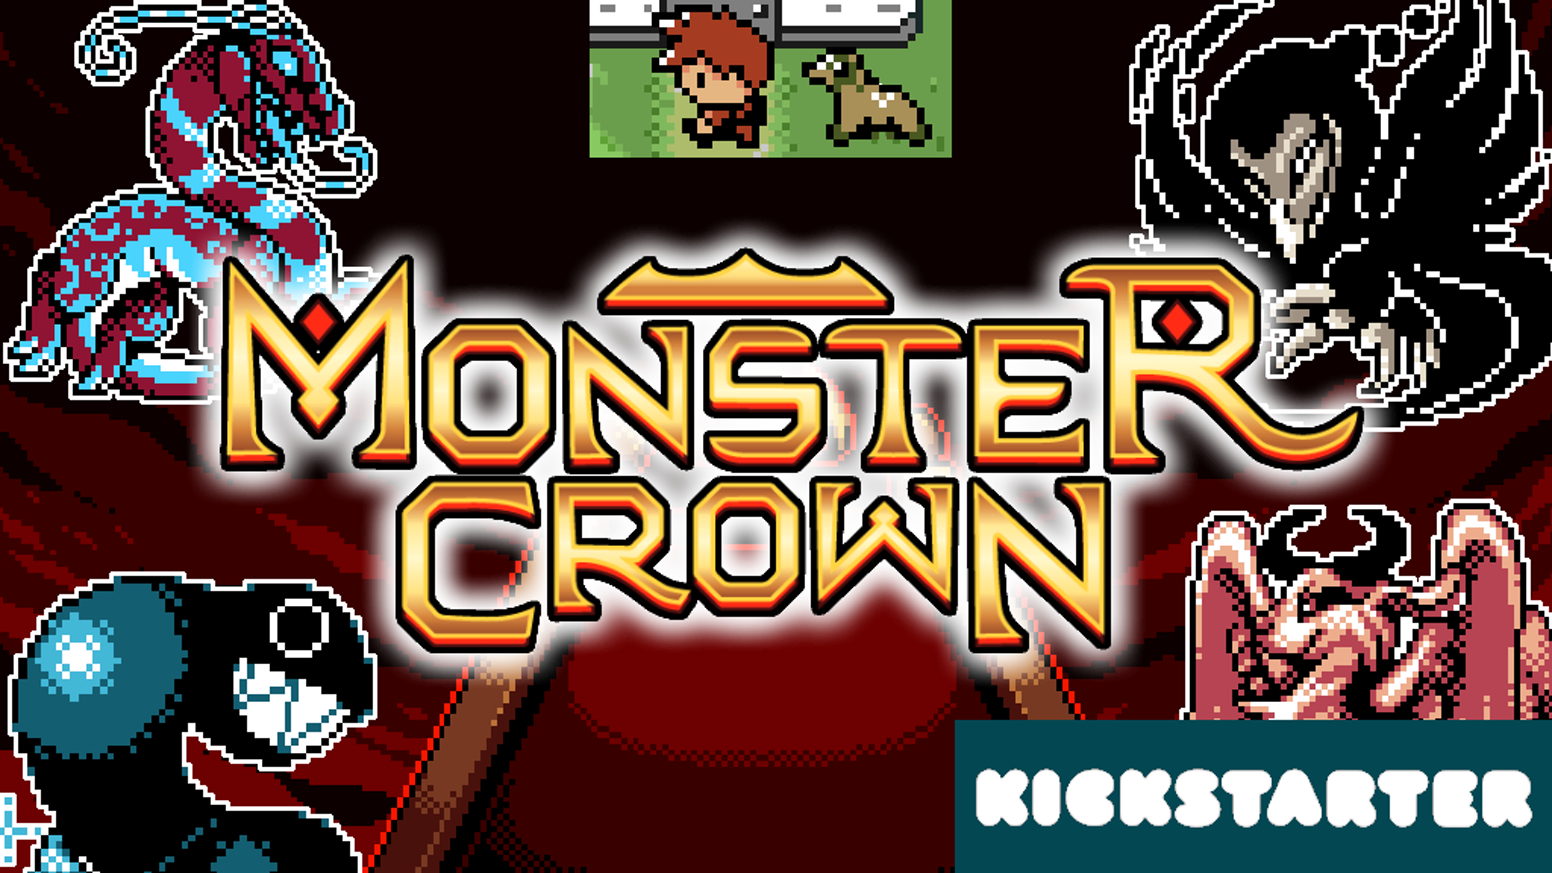 Monster Crown - Monster Taming Game with True Crossbreeds by Studio